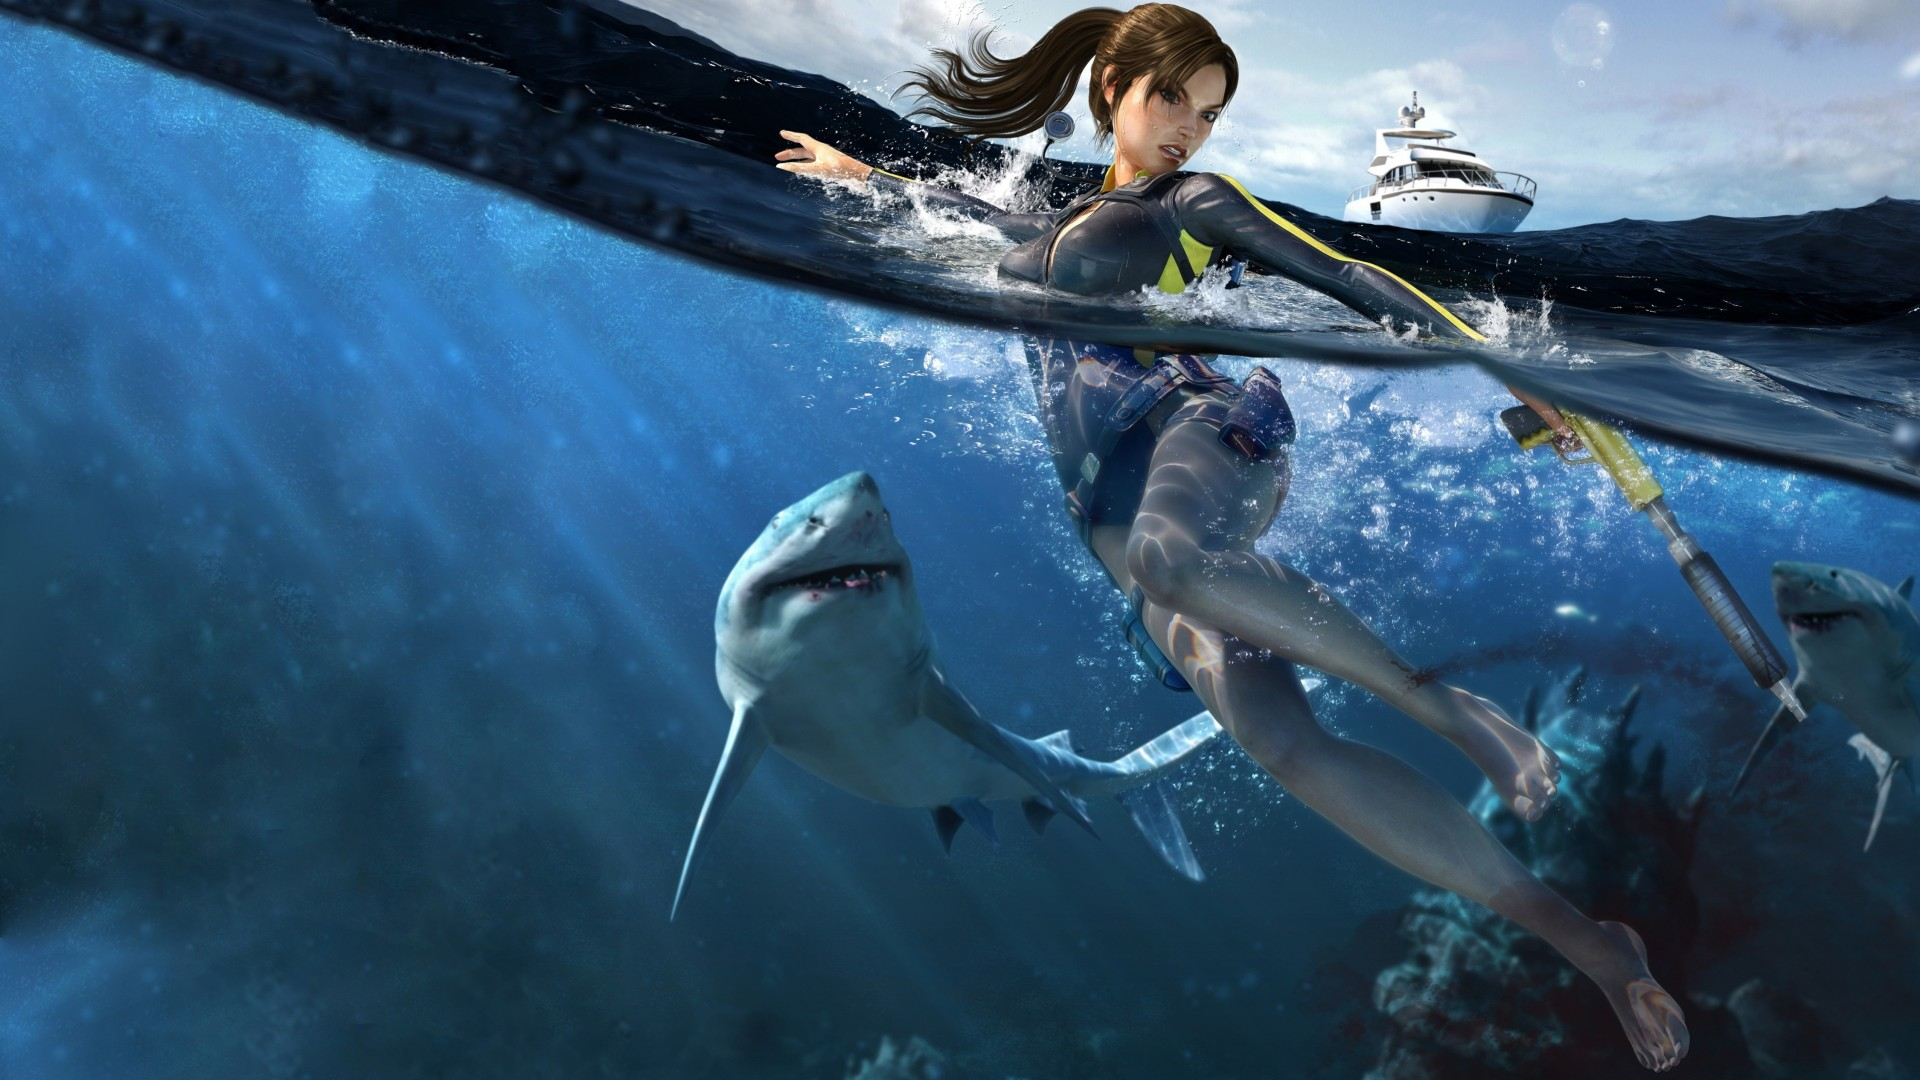 Lara Croft, Tomb Raider, shark, underwater, hunting, action, Illustration, yaht (horizontal)